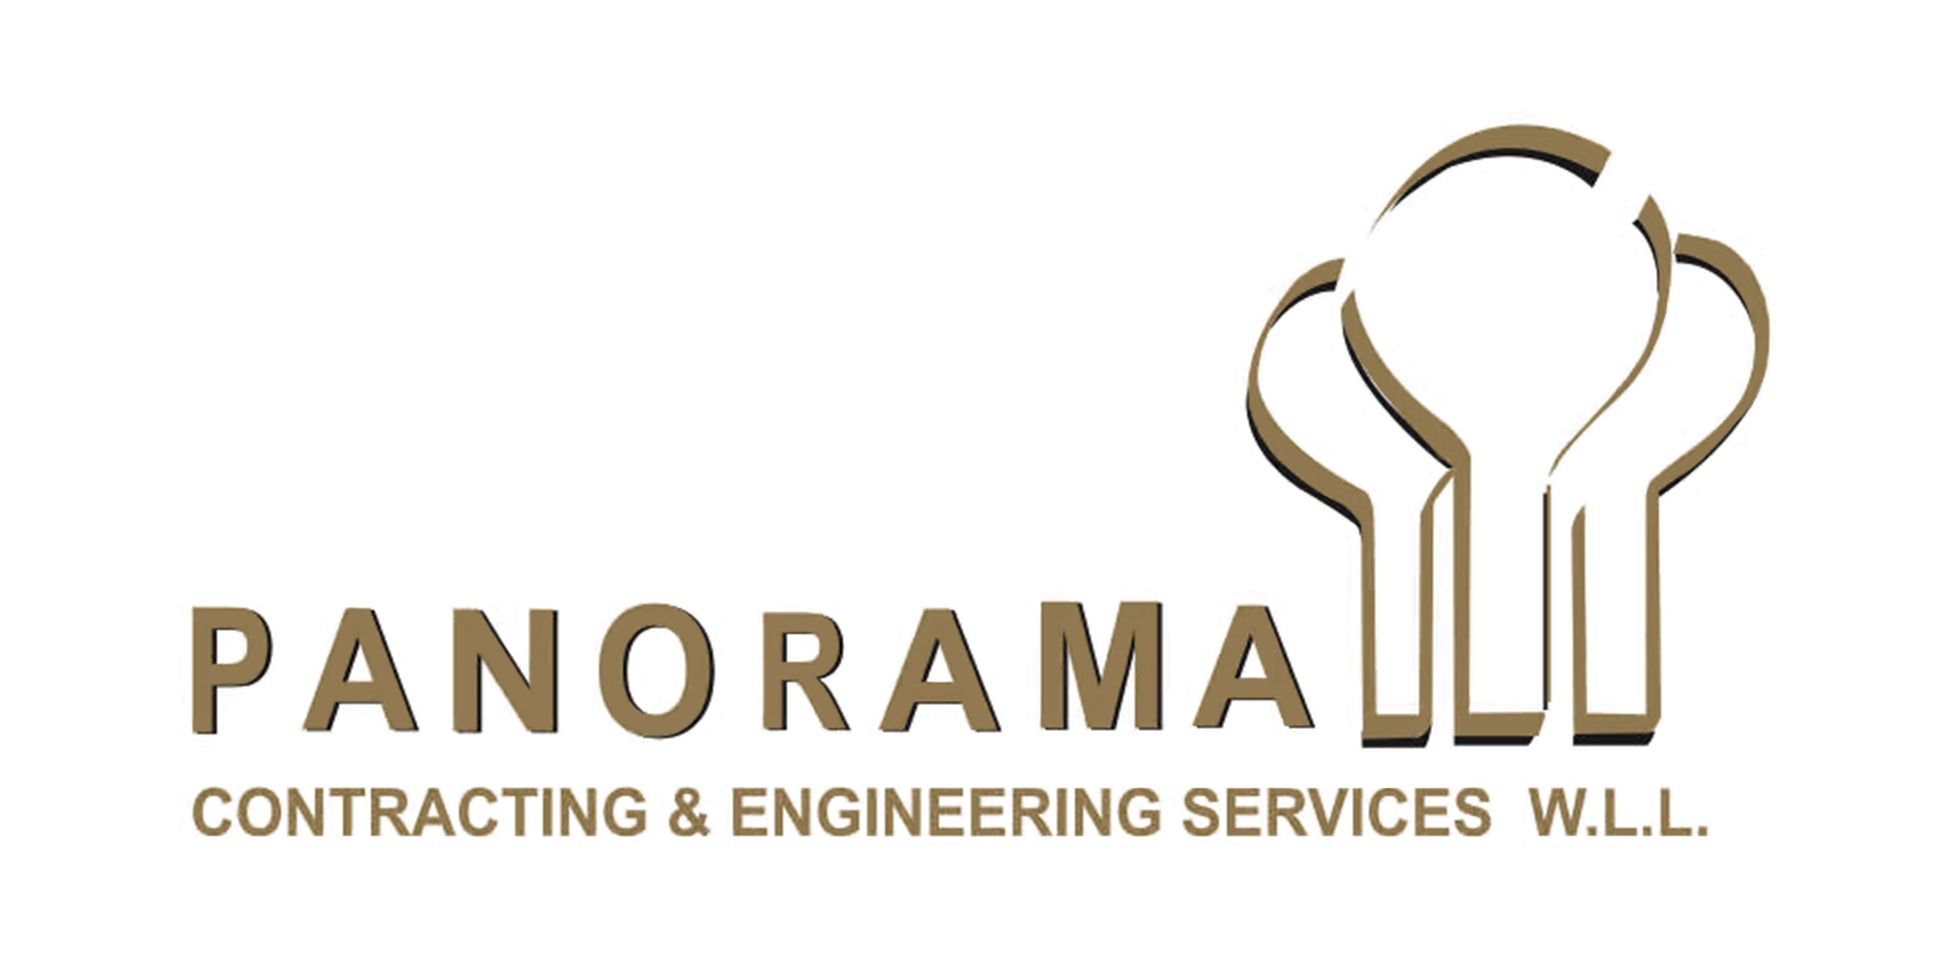 Panorama Contracting & Engineering Services W L L  | A Division of